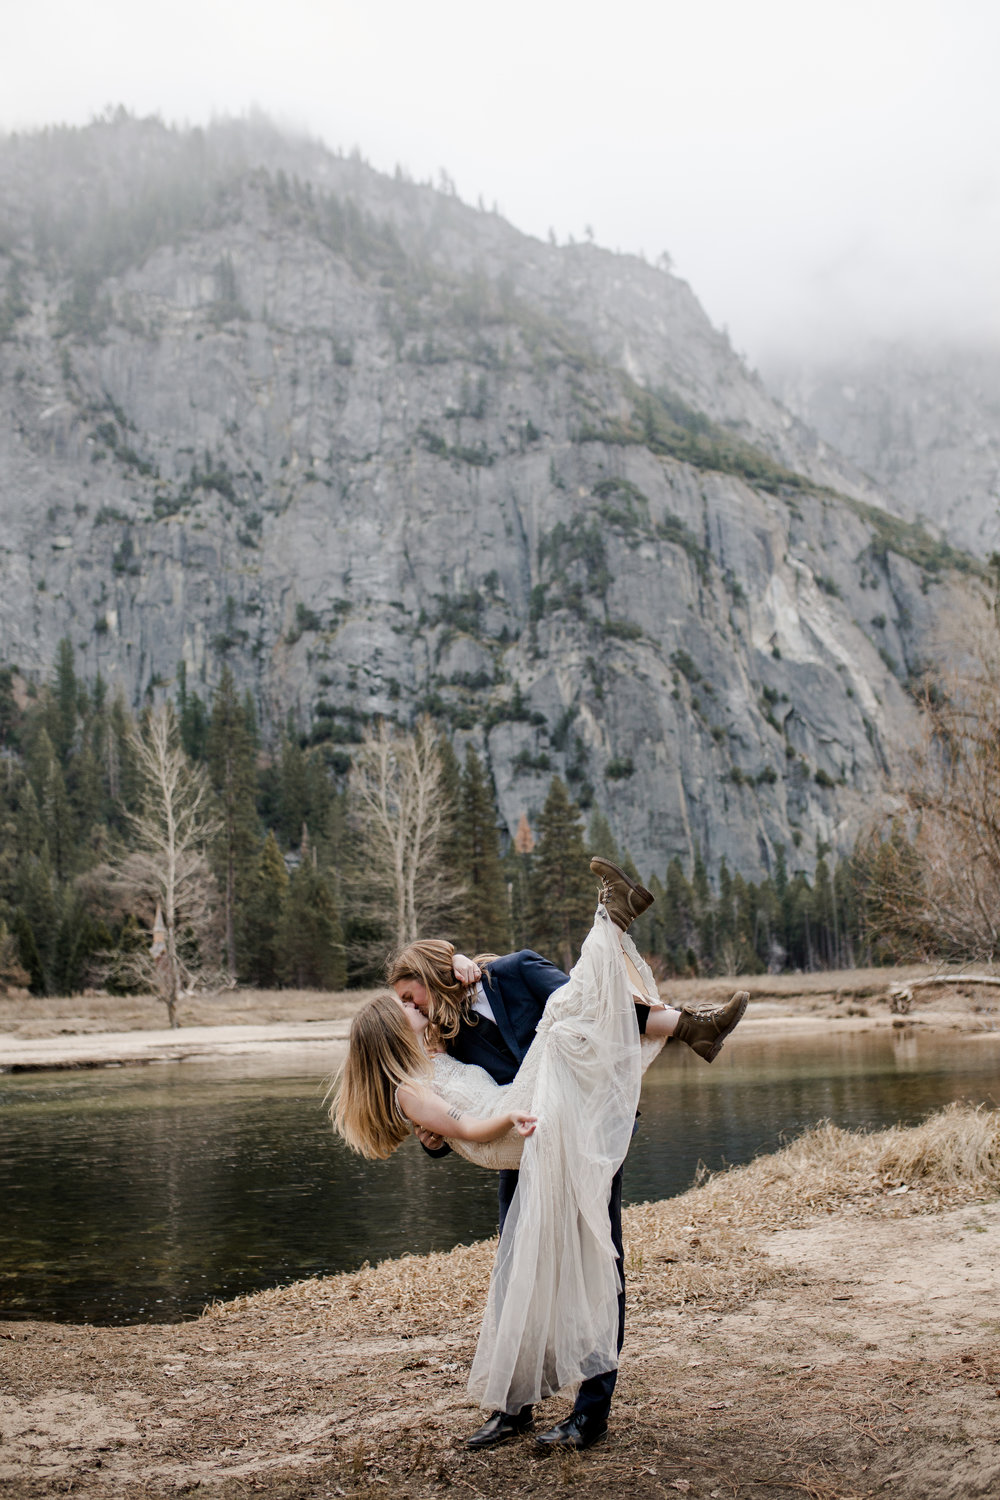 nicole-daacke-photography-yousemite-national-park-elopement-photographer-winter-cloud-moody-elope-inspiration-yosemite-valley-tunnel-view-winter-cloud-fog-weather-wedding-photos-43.jpg